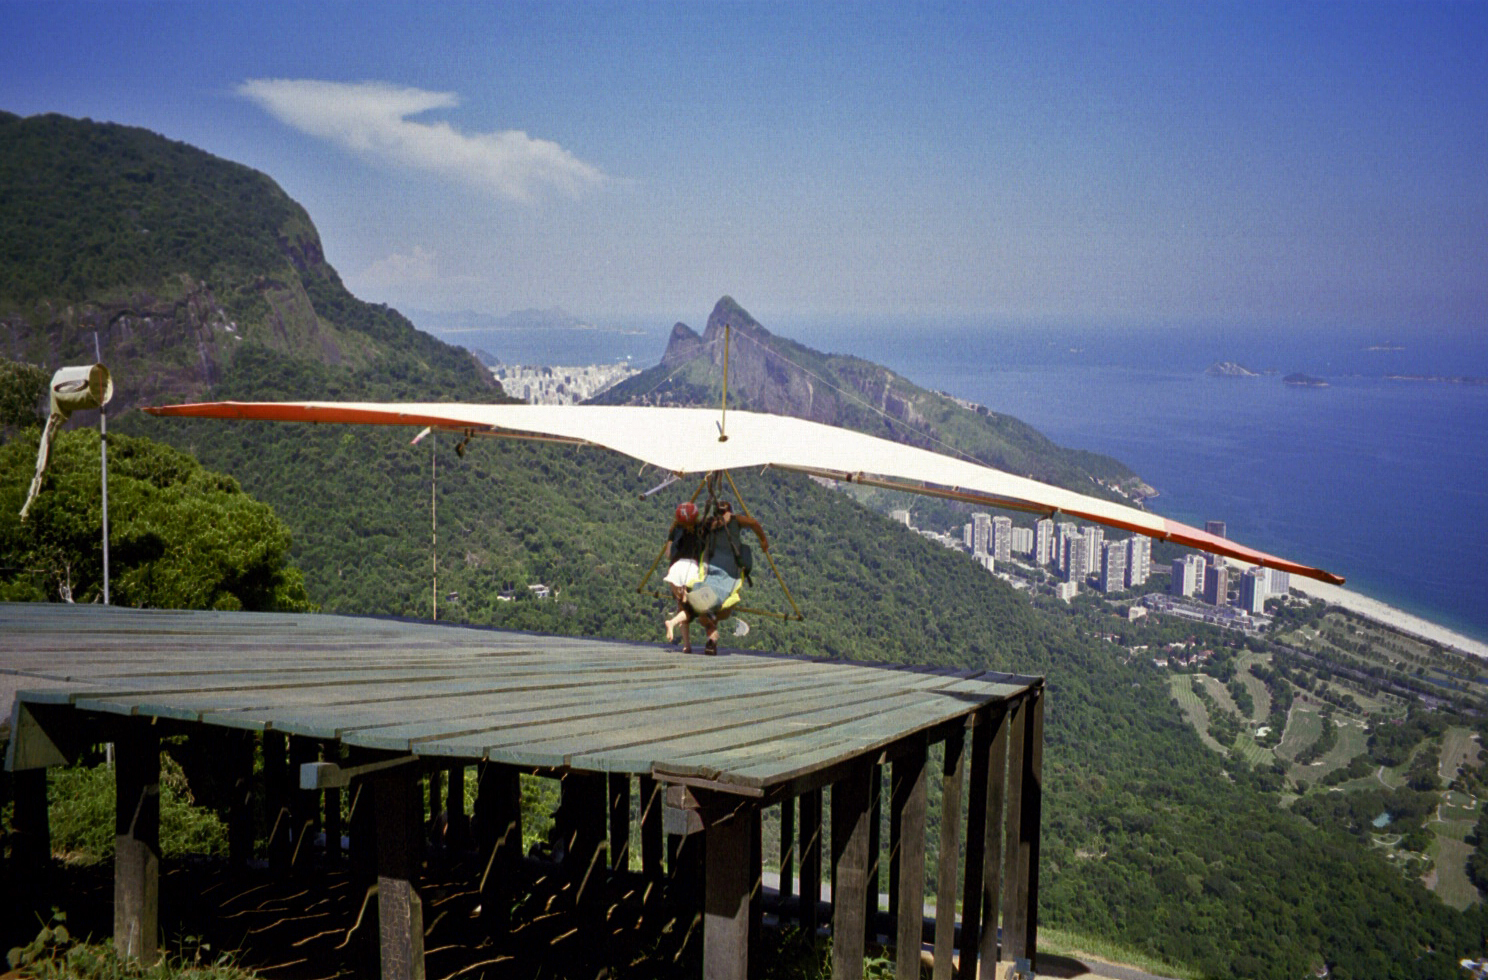 above Rio de Janeiro (note: this image is not suitable for large prints)